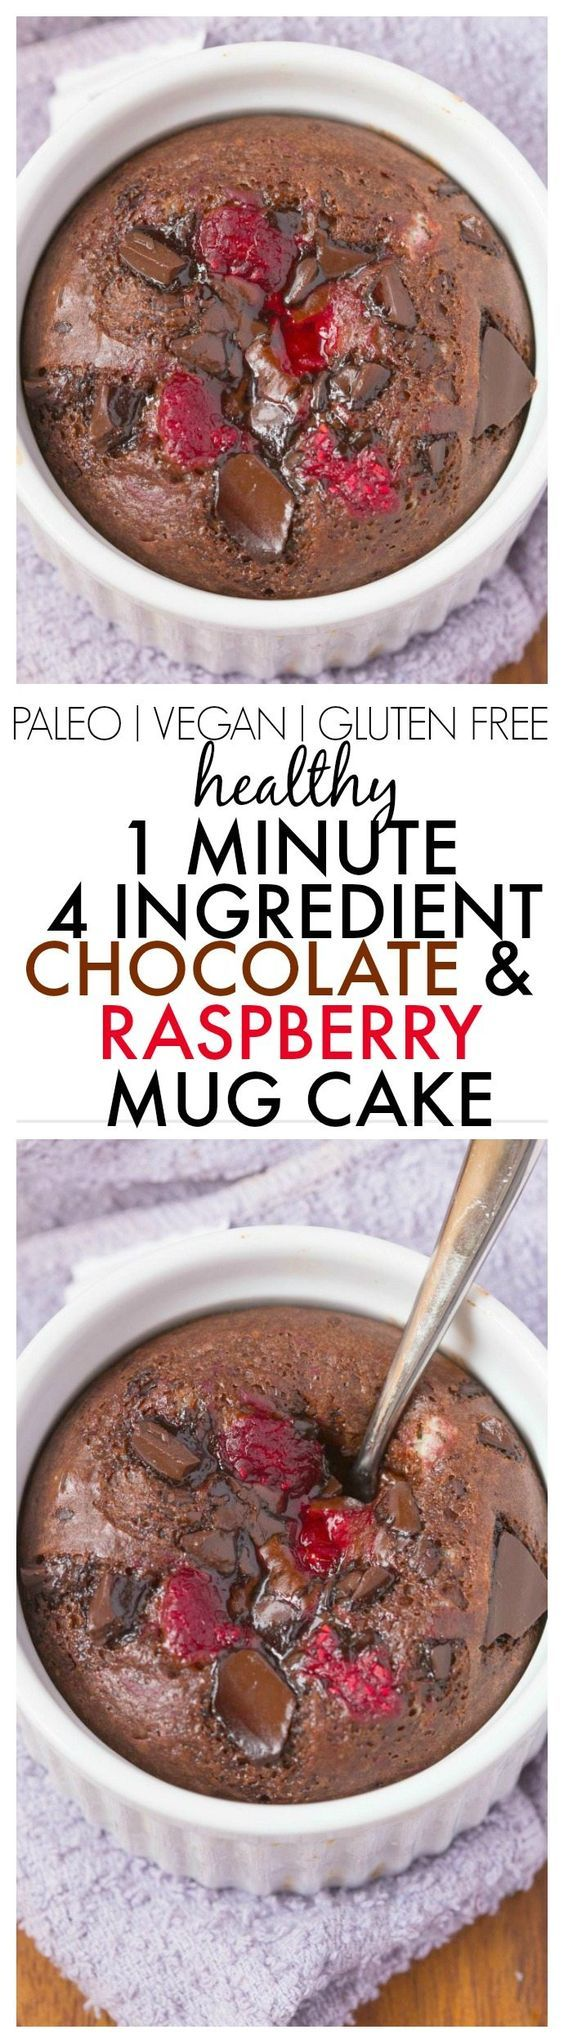 Healthy 4 Ingredient Chocolate and Raspberry Mug Cake ready in just ONE minute- NO flour NO grains NO refined sugar and NO oil/butter but amazing- Oven option too! {vegan gluten free paleo recipe}